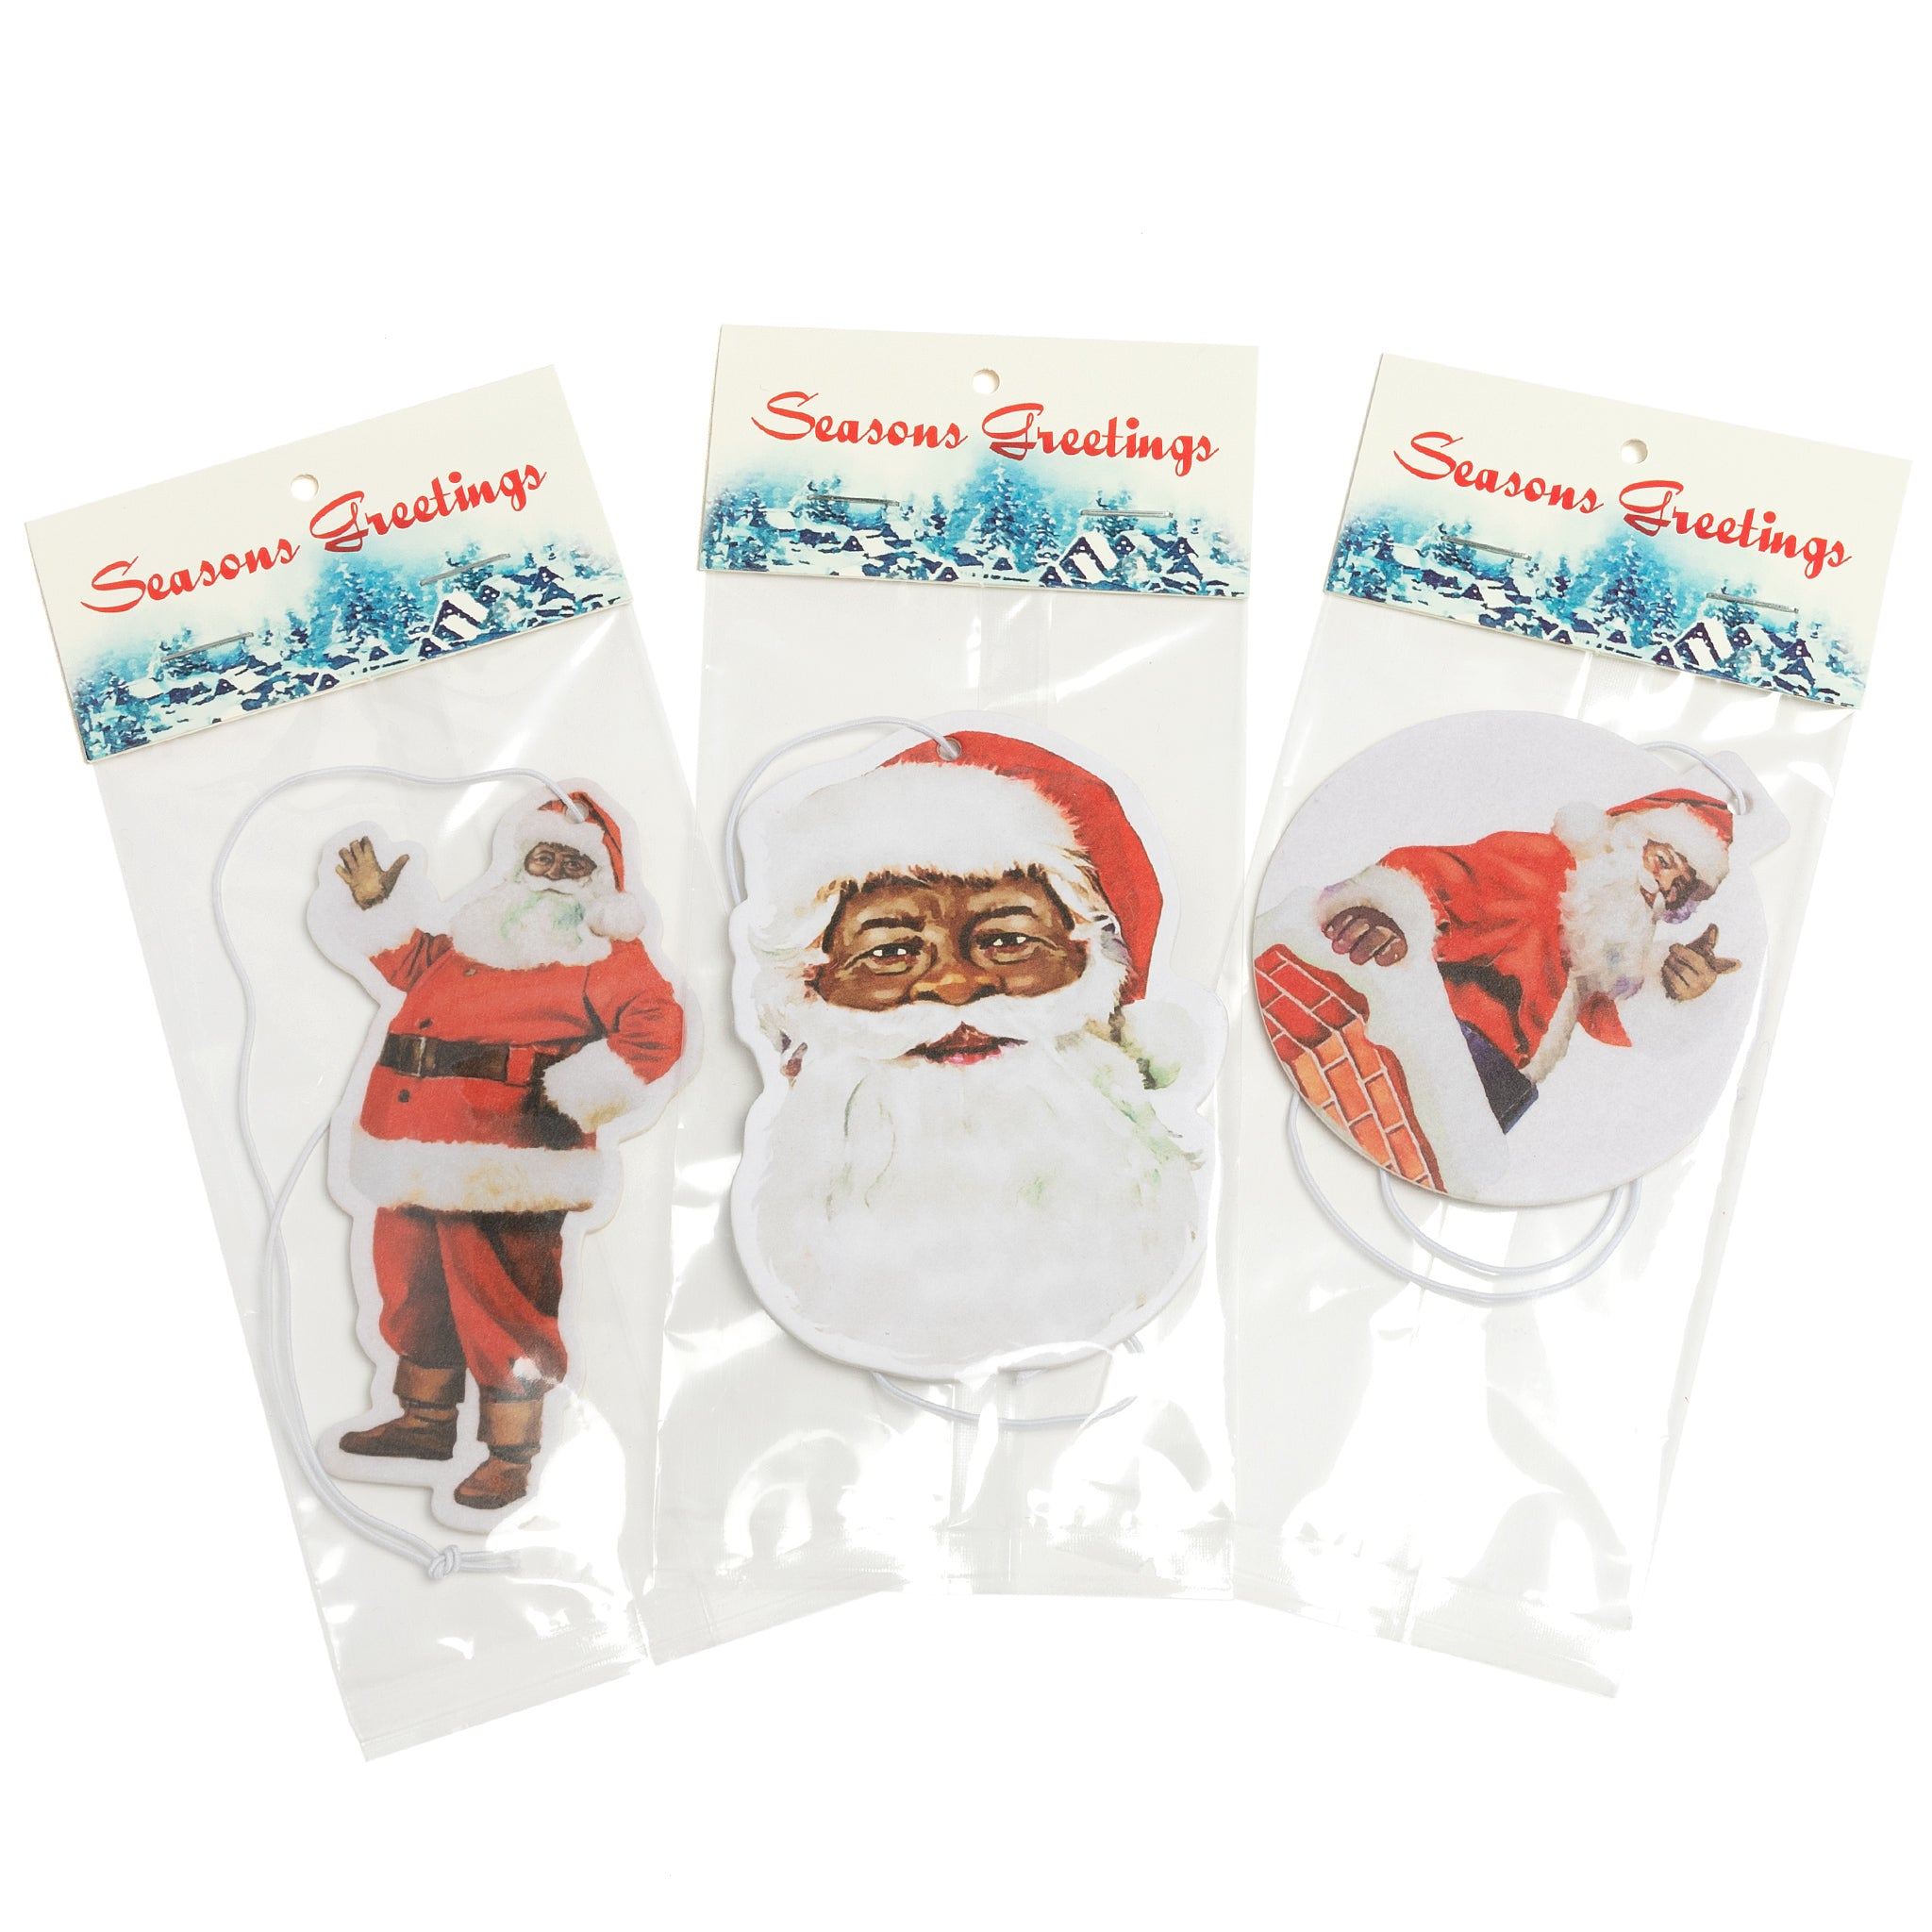 Our Santa Portrait Air Freshener